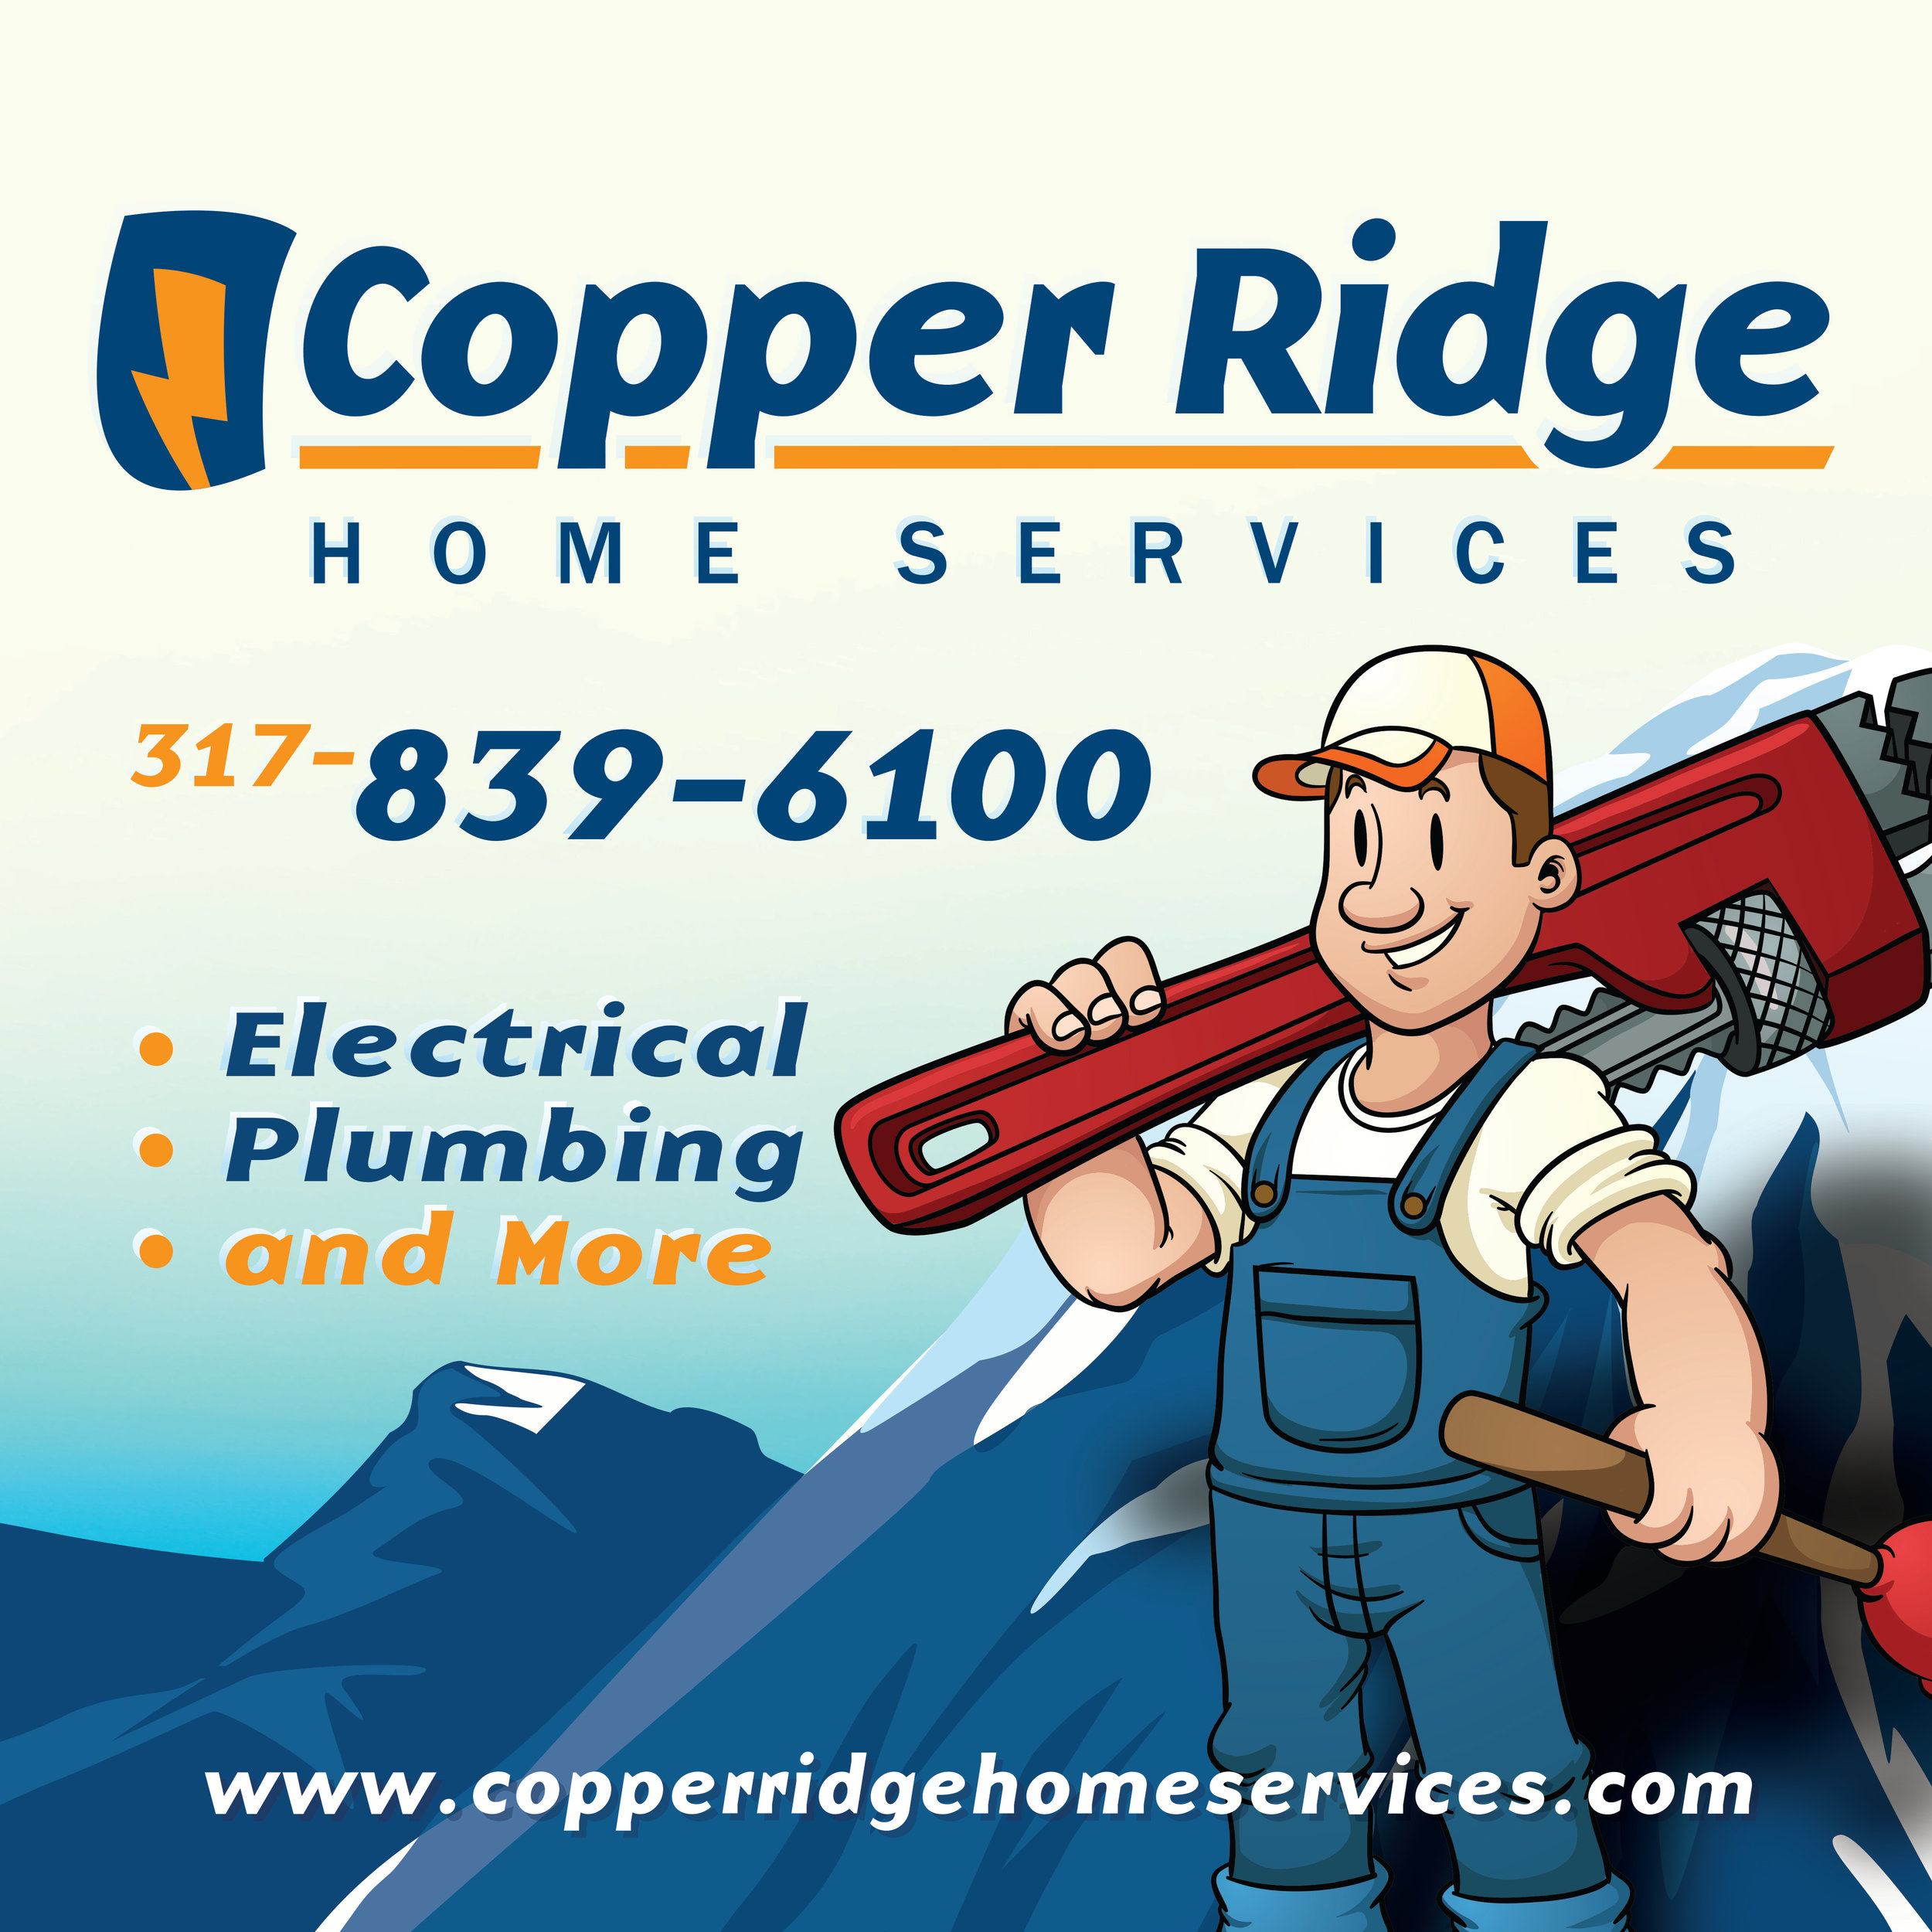 be handy by using yours to dial copper ridge home services when you need work done! - Click link below.